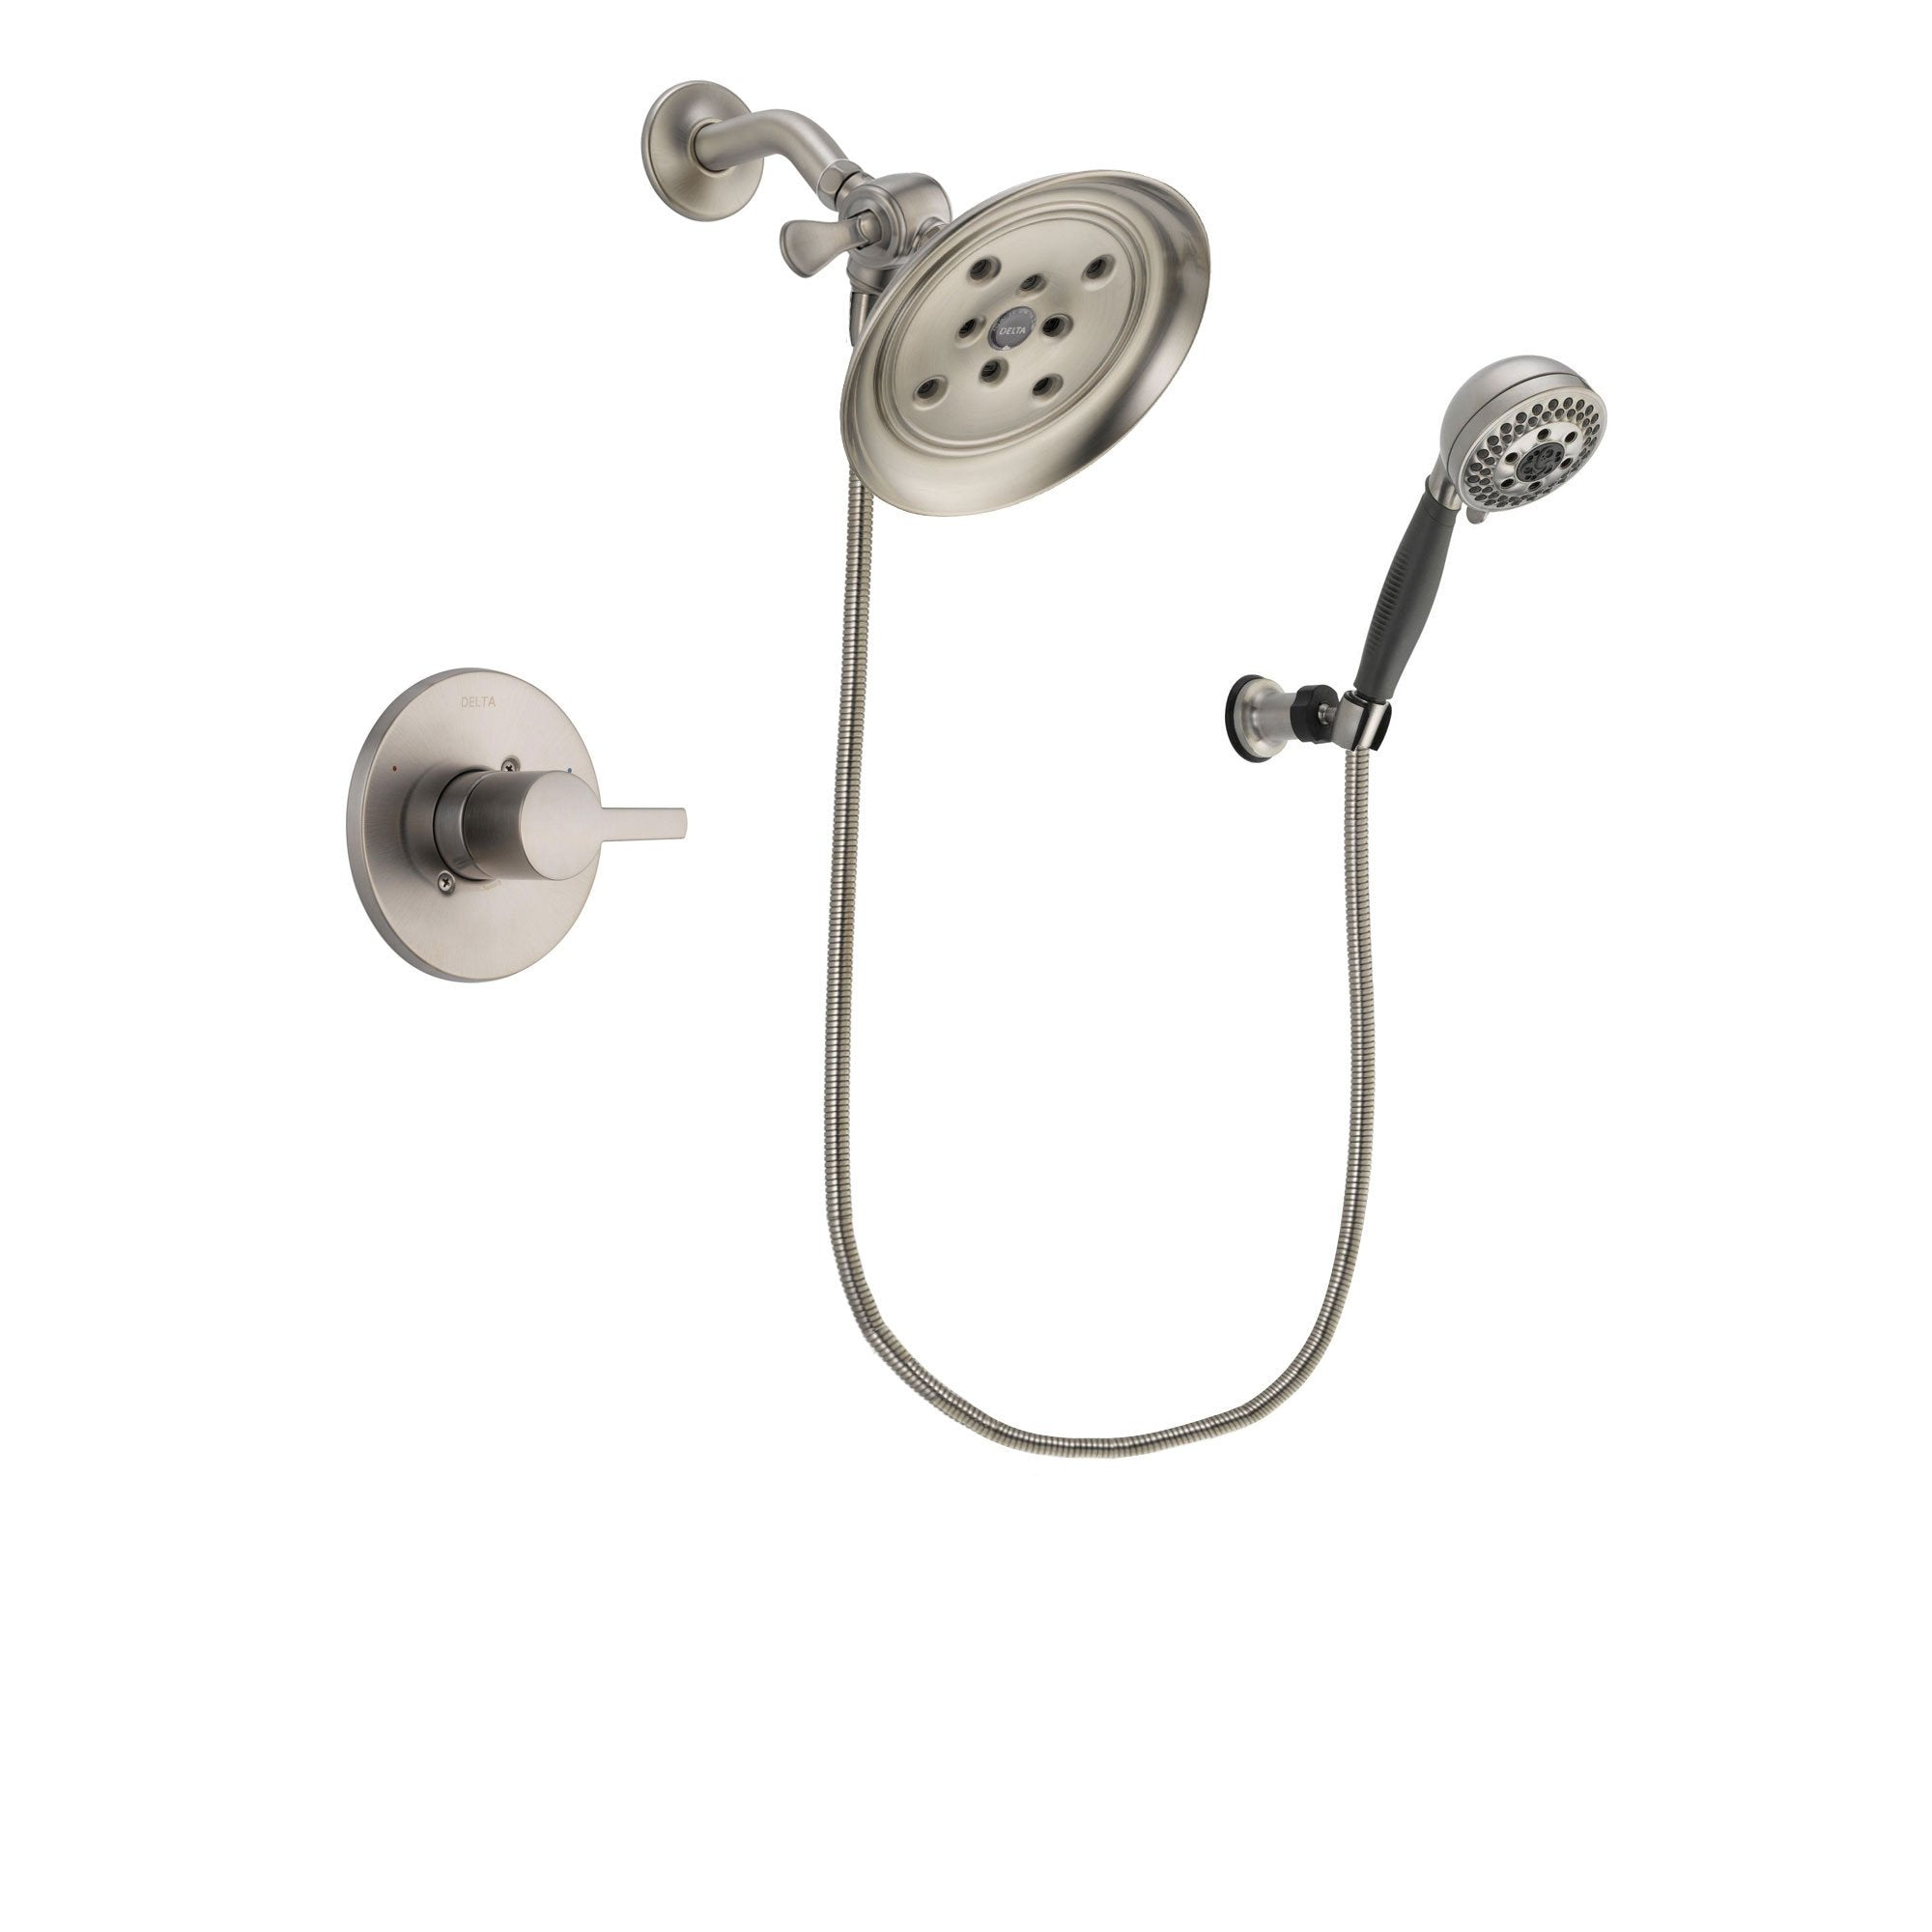 Delta Compel Stainless Steel Finish Shower Faucet System w/ Hand Spray DSP2004V